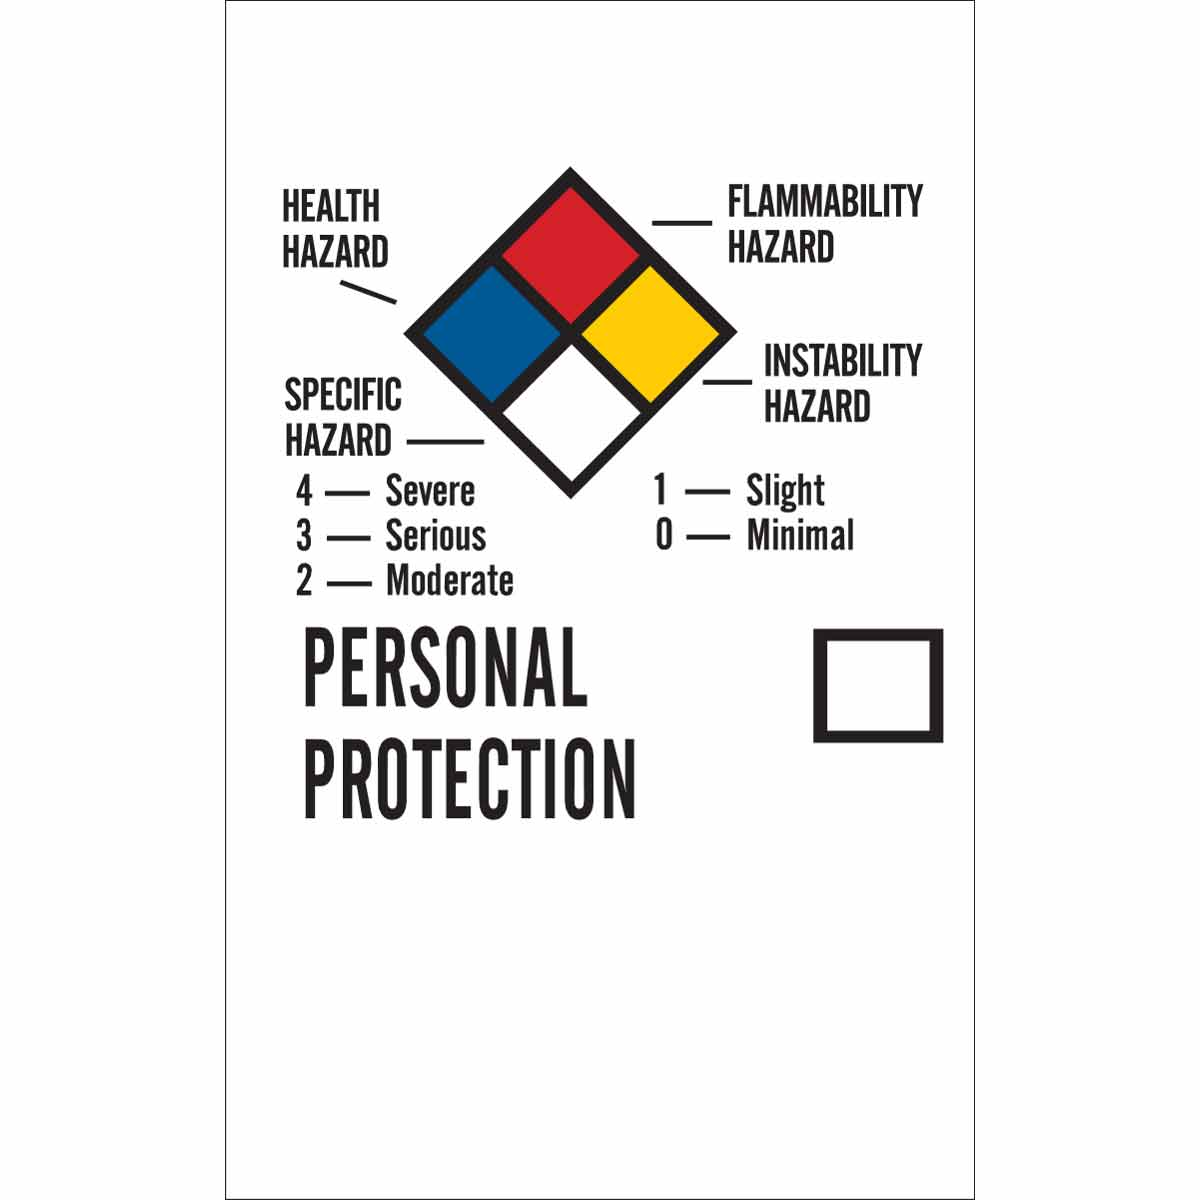 Brady® 121158 Non-Reflective Self-Adhesive Square Hazardous Waste Label, 6 in W, NON-REGULATED WASTE GENERATOR INFORMATION___, ETC. Legend, Blue on White, B-7569 Adhesive Vinyl Film, 50 per Pack Labels